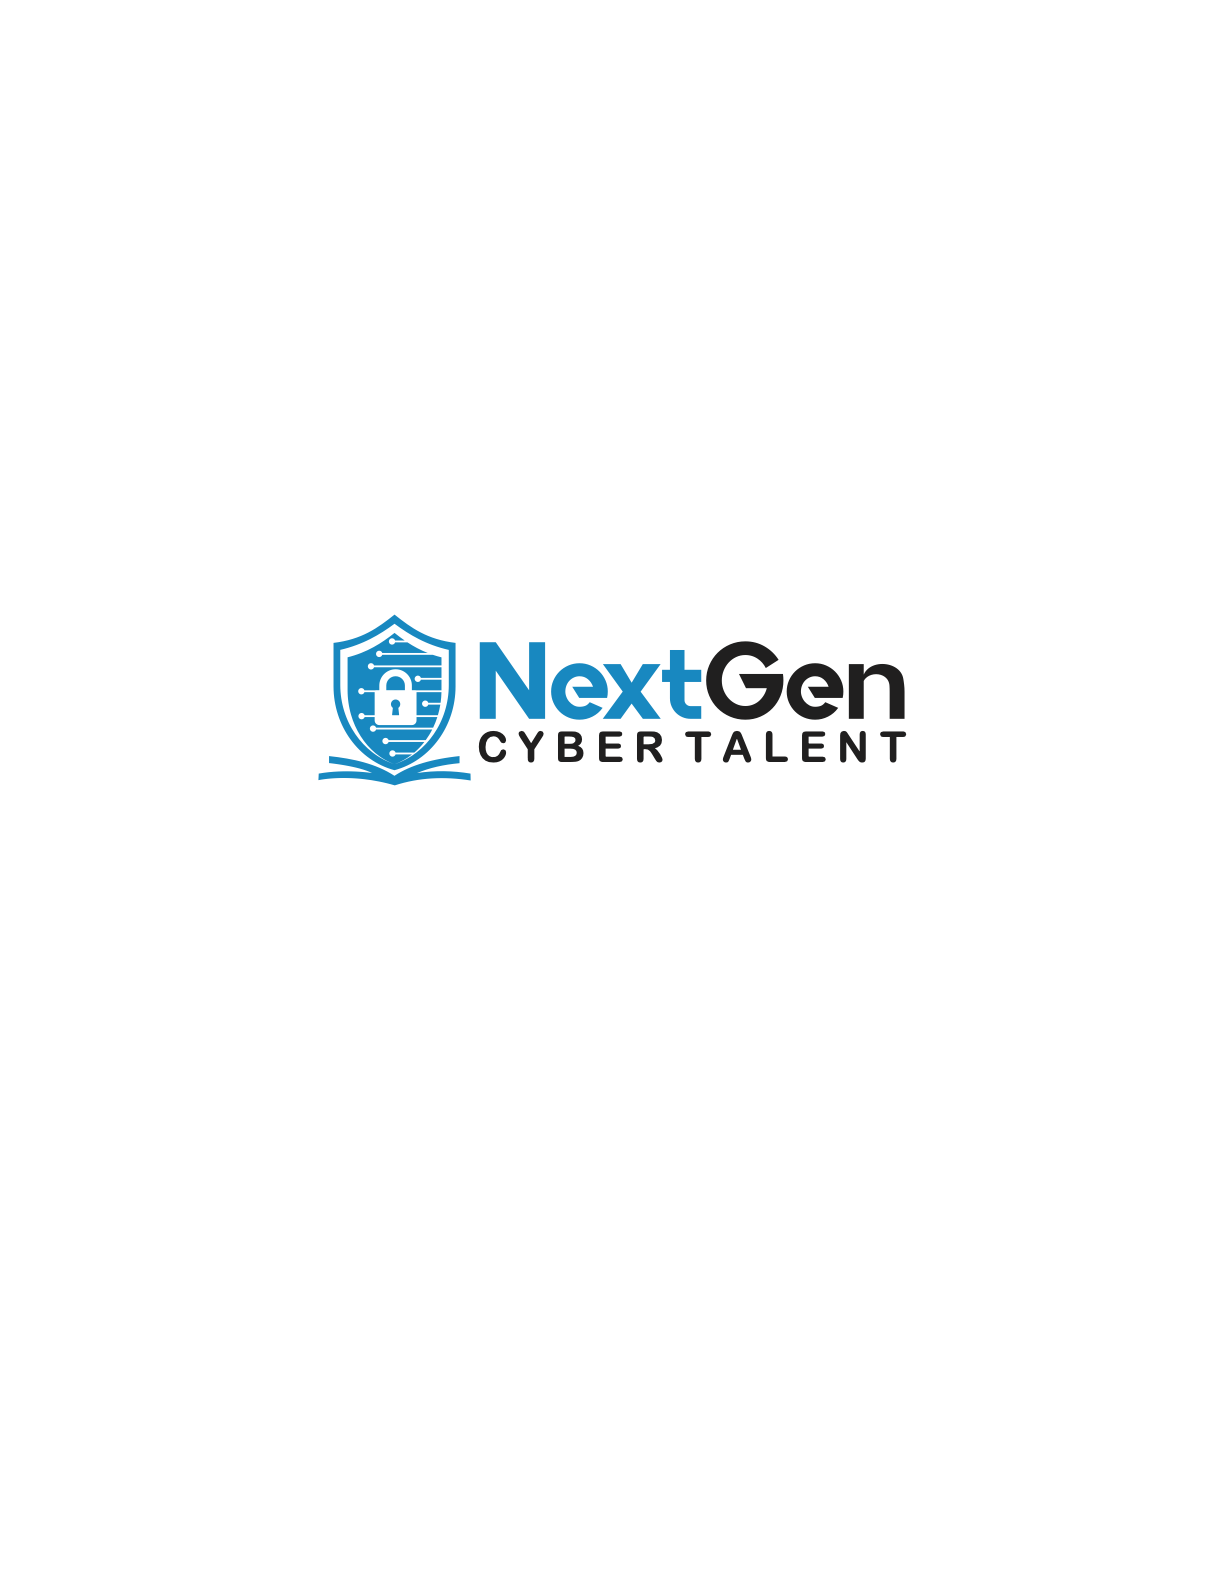 [UPDATED]: NextGen Cyber Talent Announces its First Pilot Cohort and Governing Board